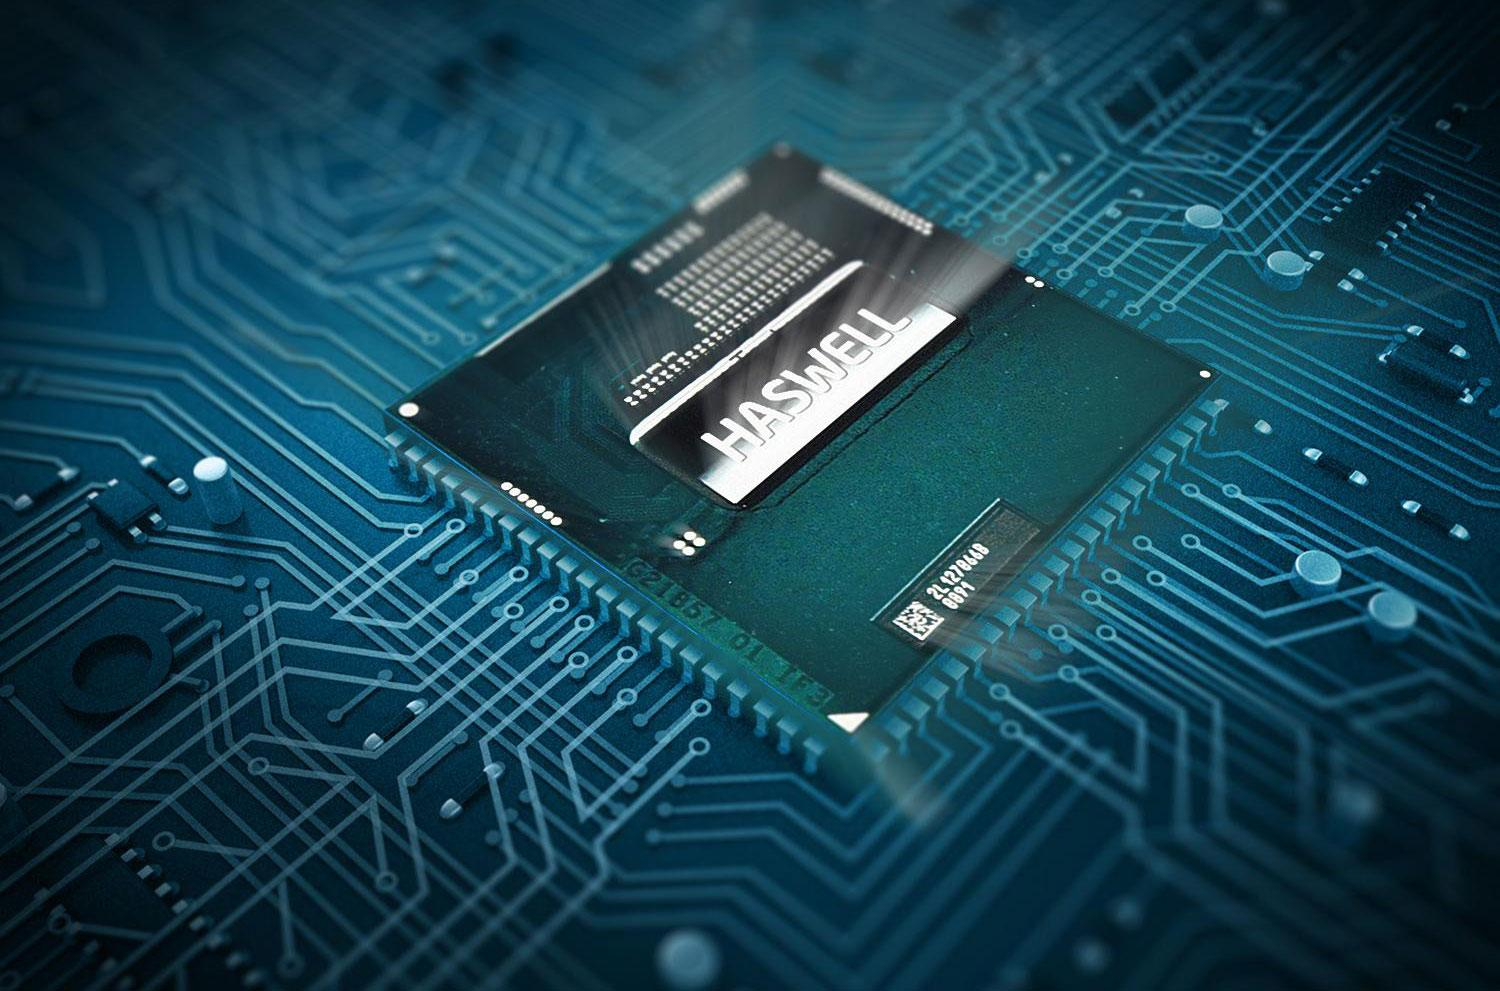 Intel-4th-gen-haswell-chip